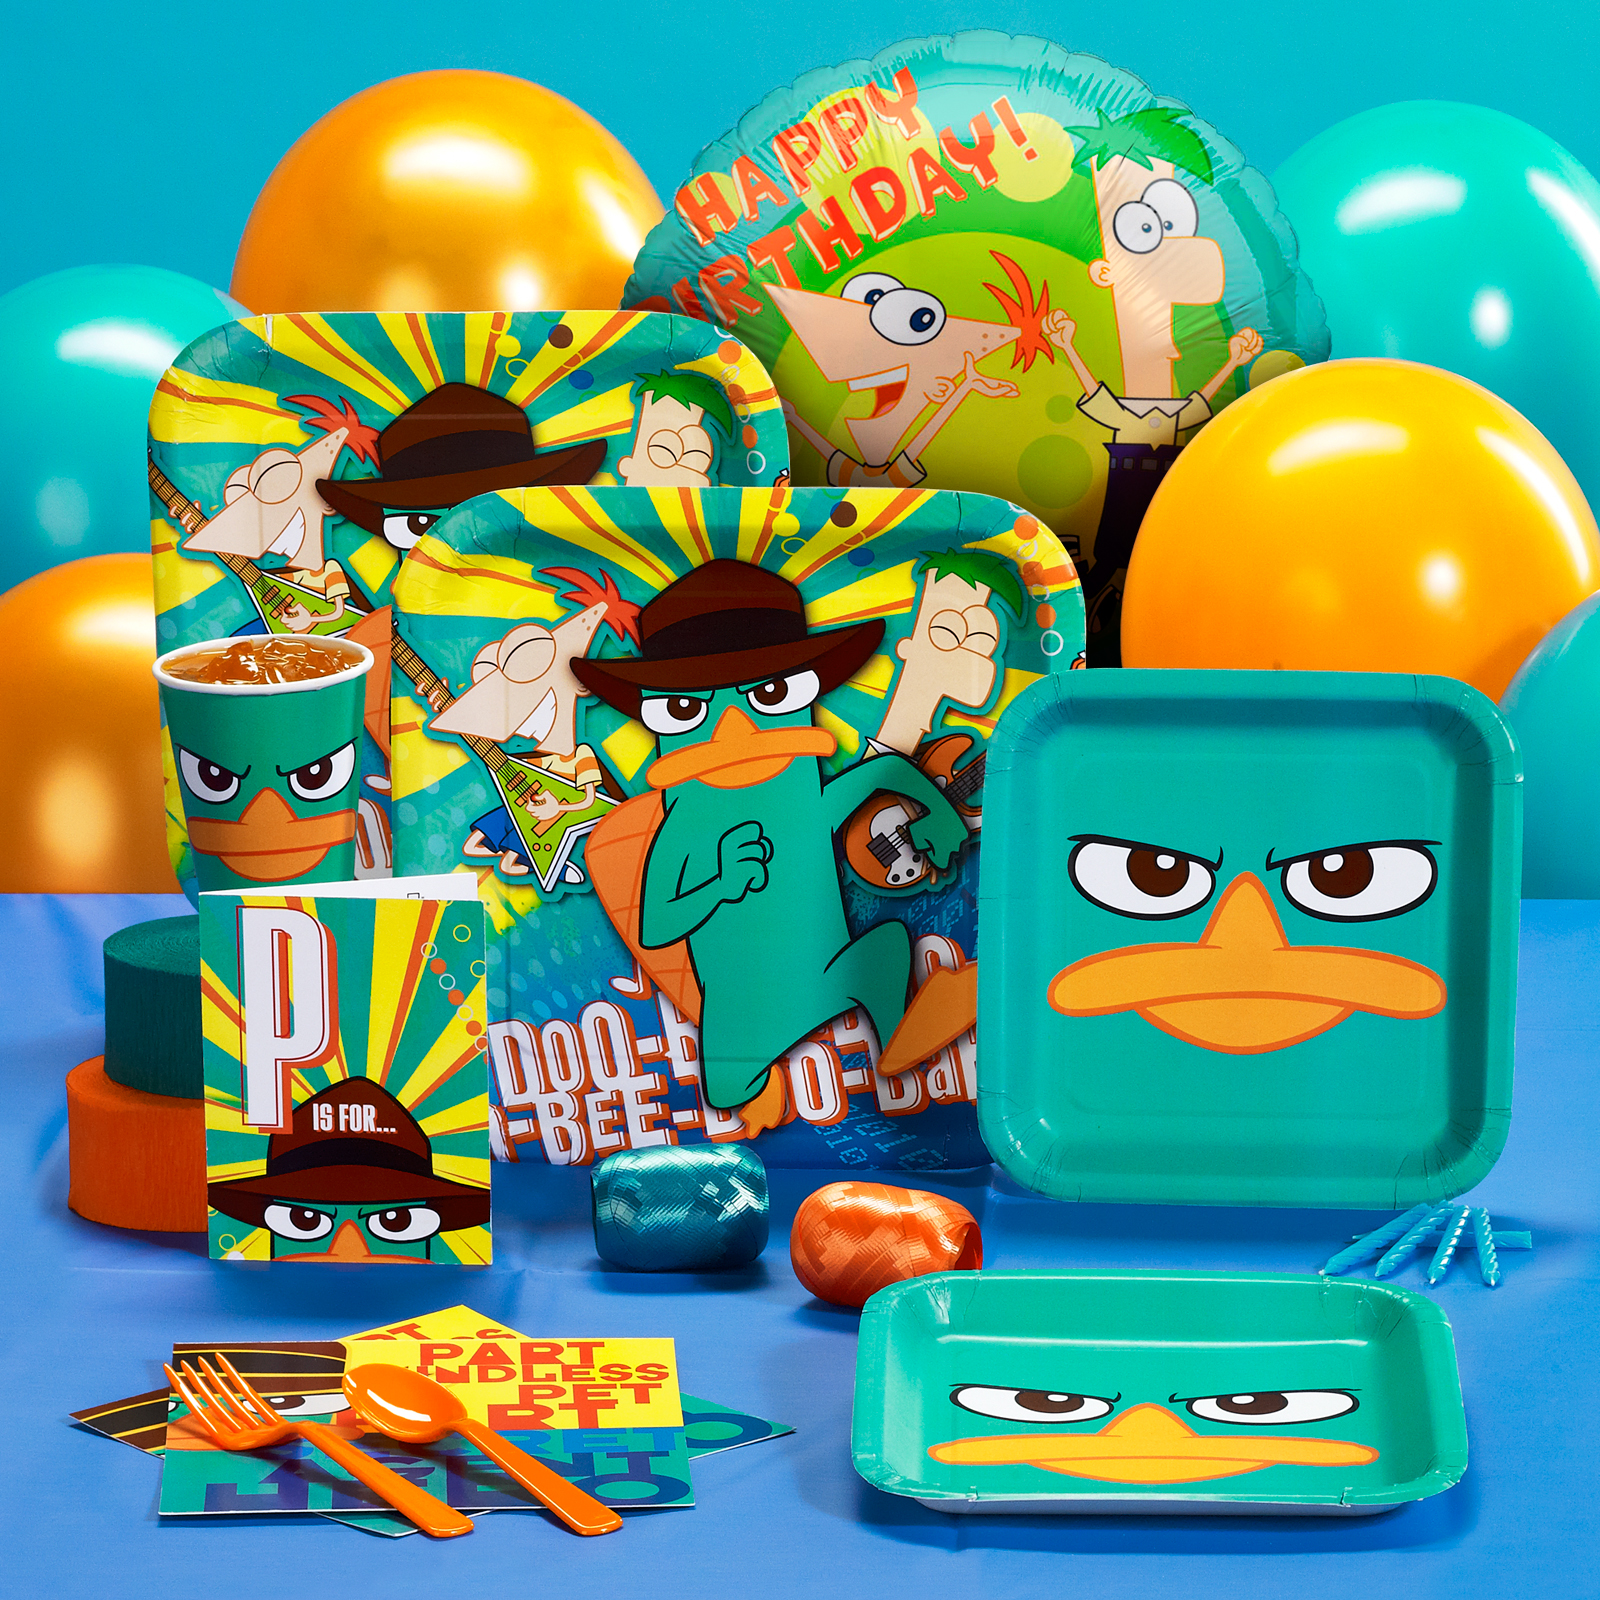 Phineas & Ferb: Fun for Kids of All Ages at Total Birthday